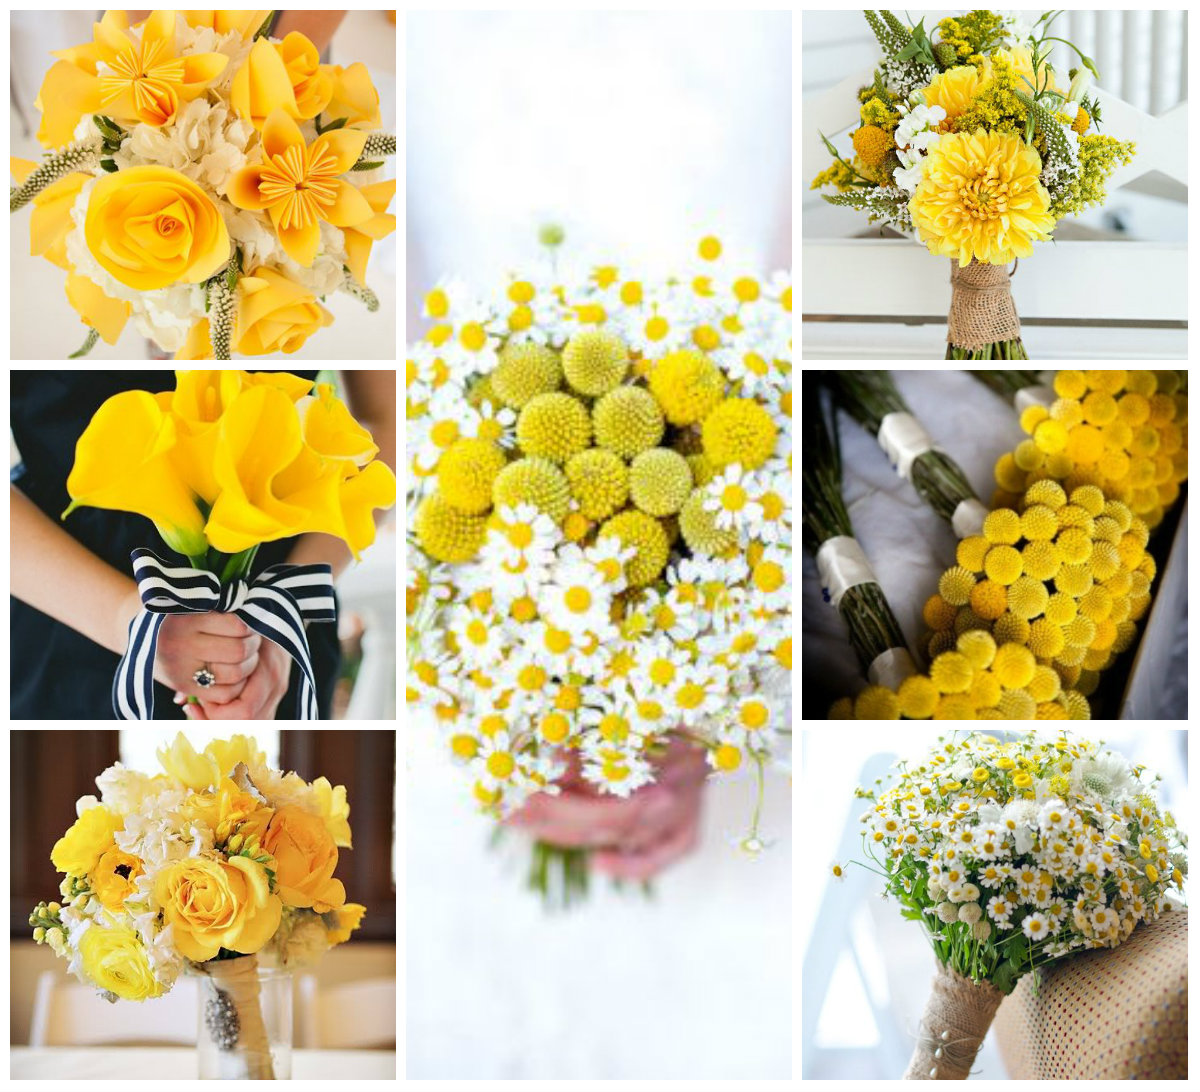 Matrimonio Tema Giallo : Yellow wedding weddinglam matrimoni eventi